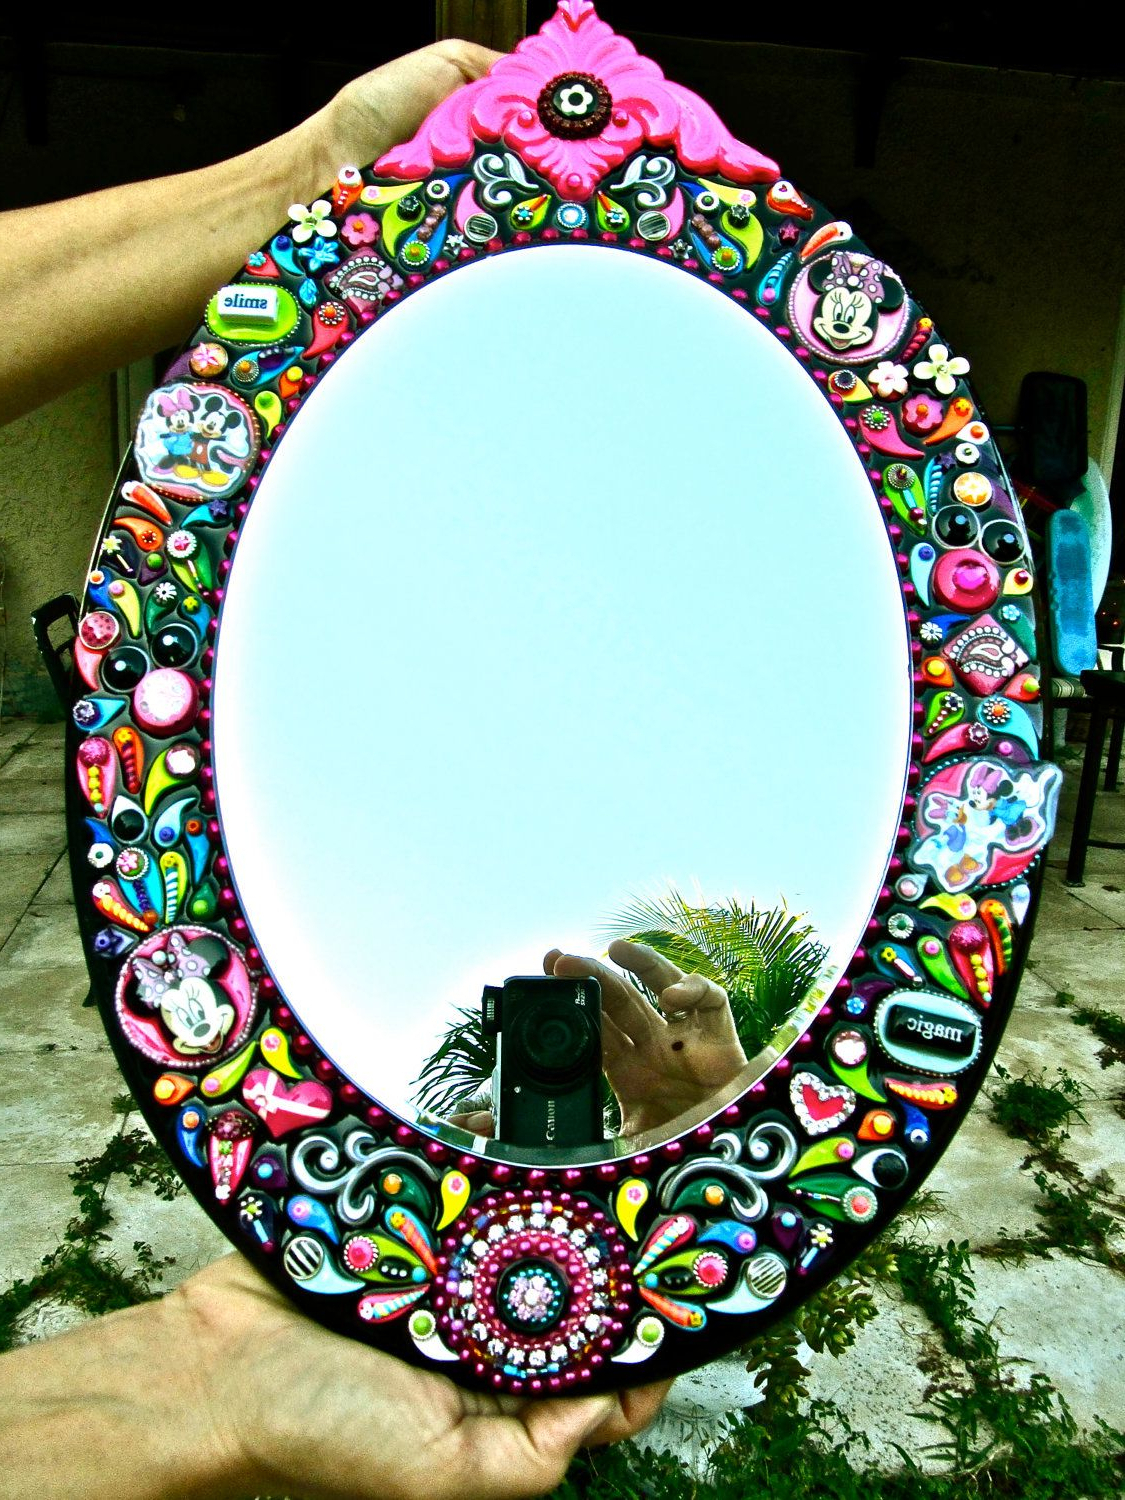 Minnie Mouse Mirror Embellished Disney Jeweled Ooak Hand Crafted Intended For Current Disney Wall Mirrors (View 5 of 20)